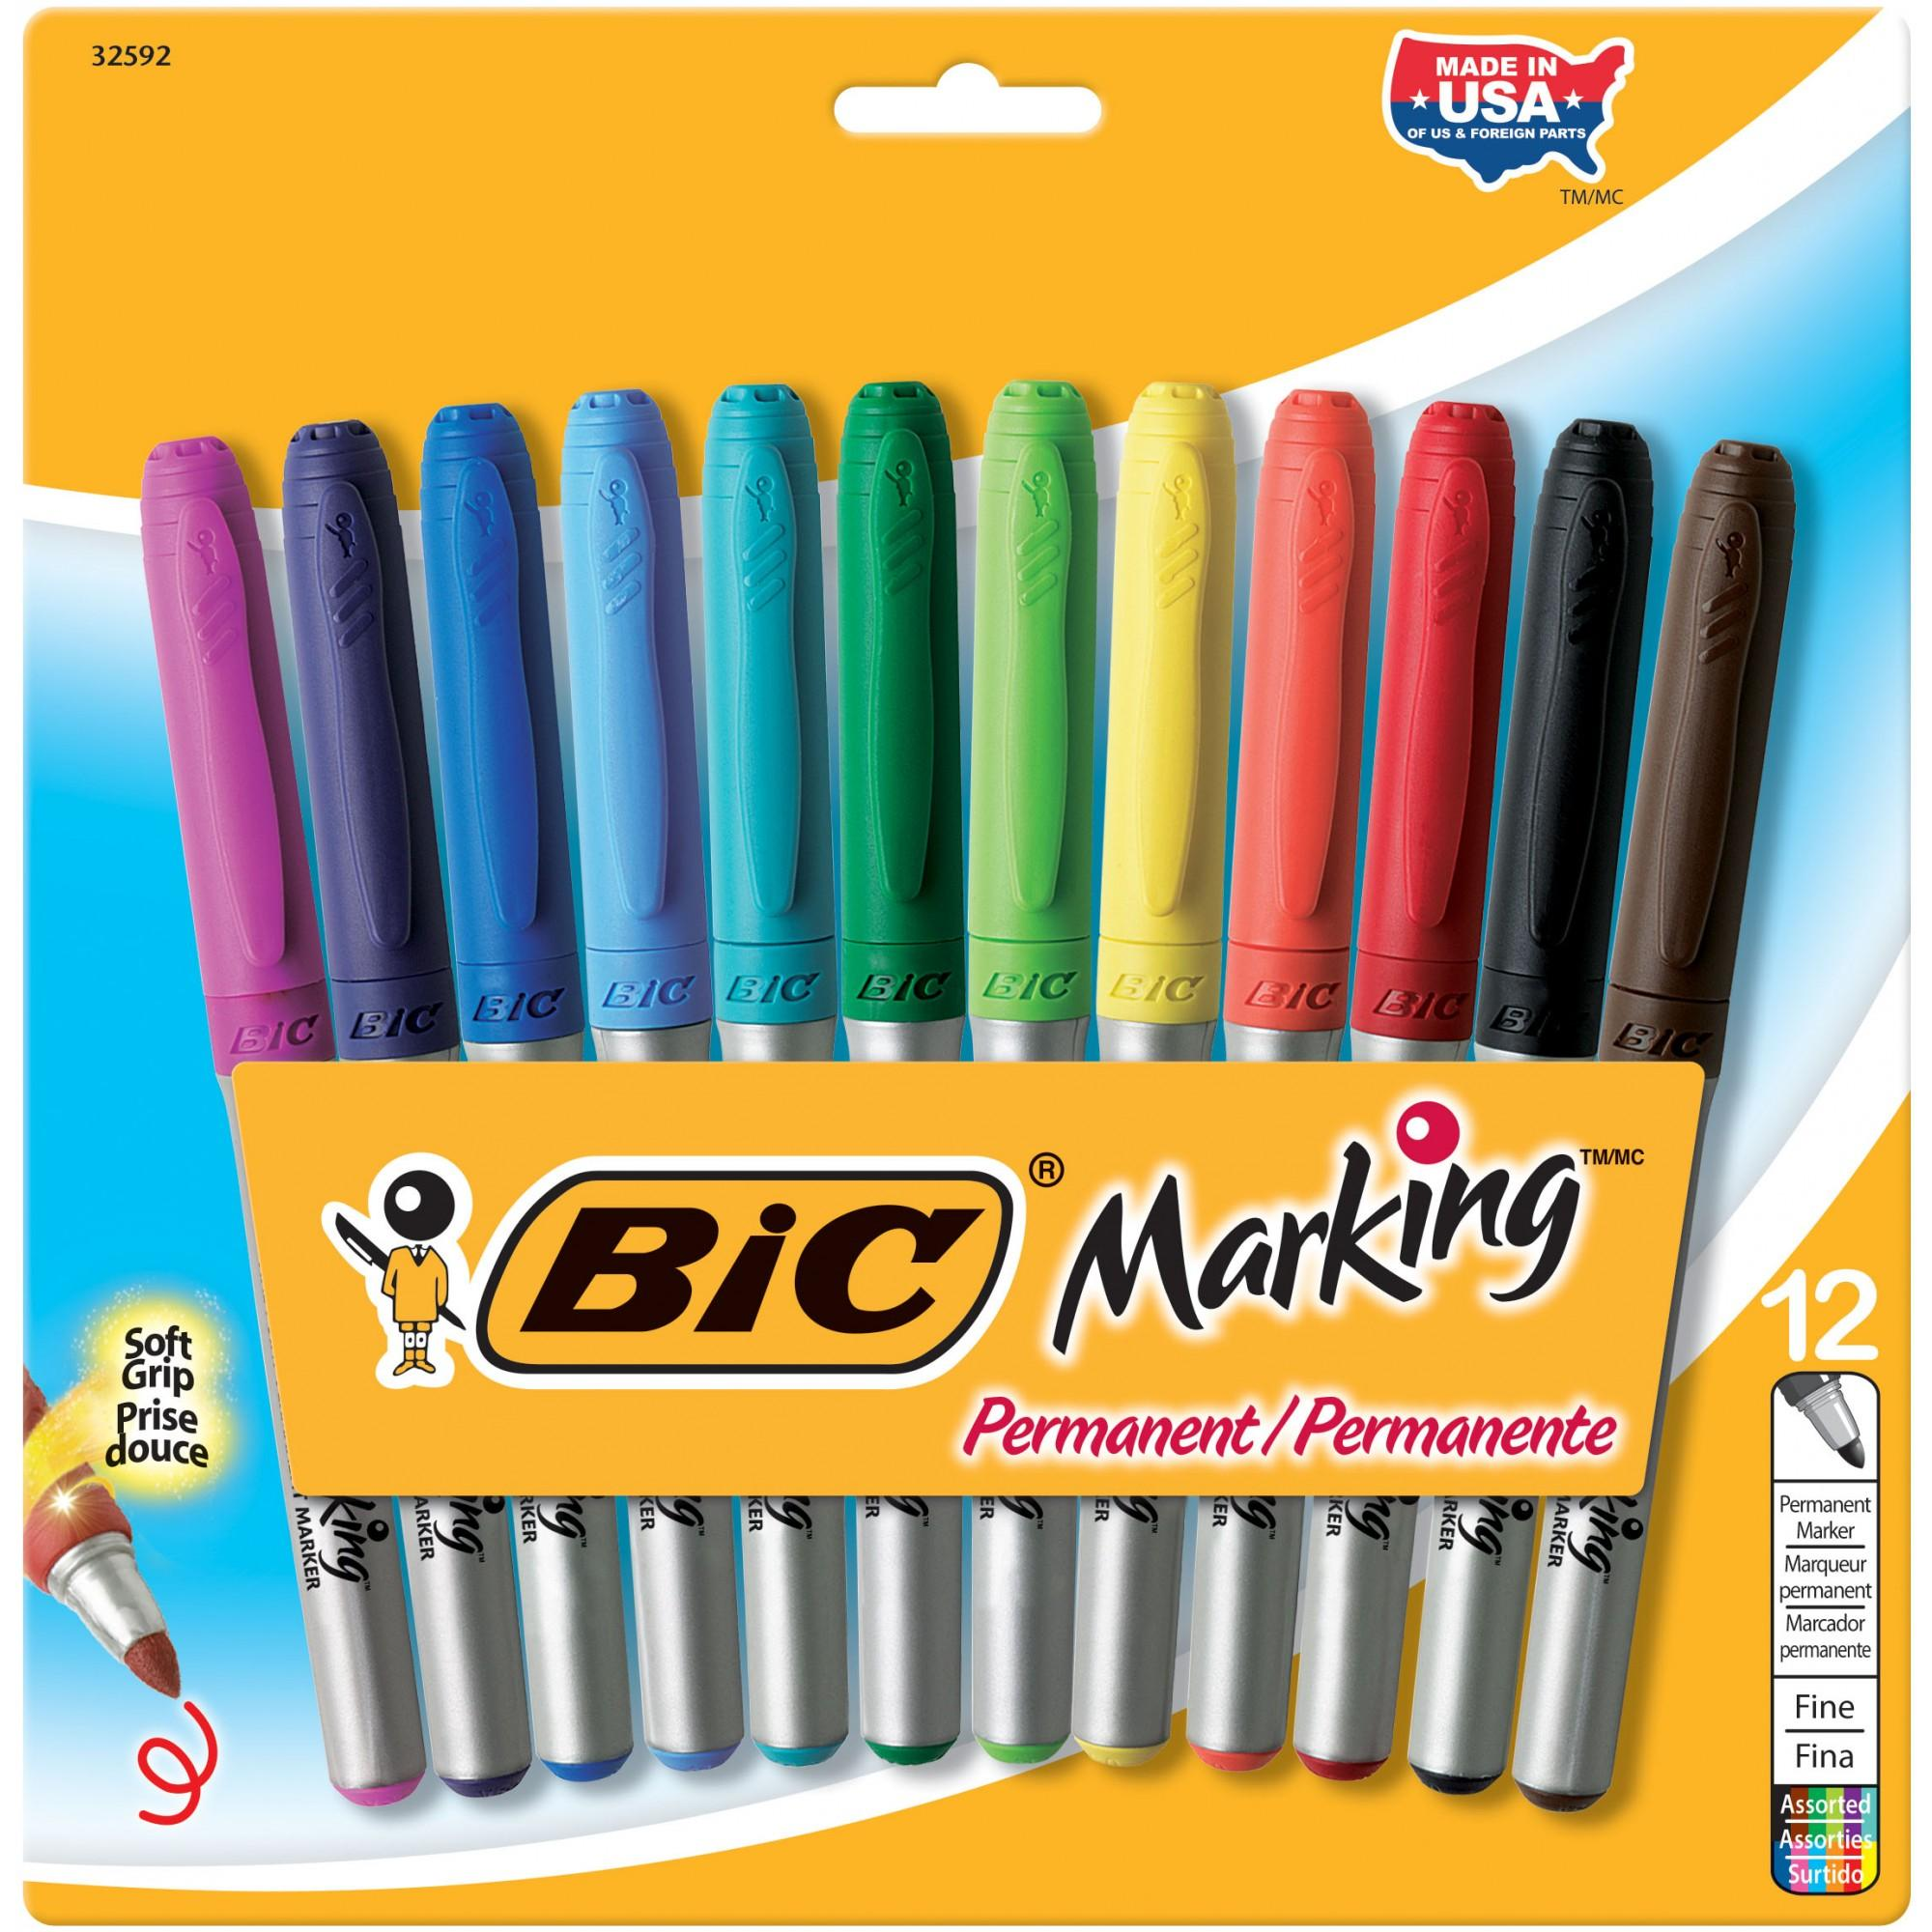 BIC Marking Permanent Markers, Fashion Colors, Fine Point, 12-Count